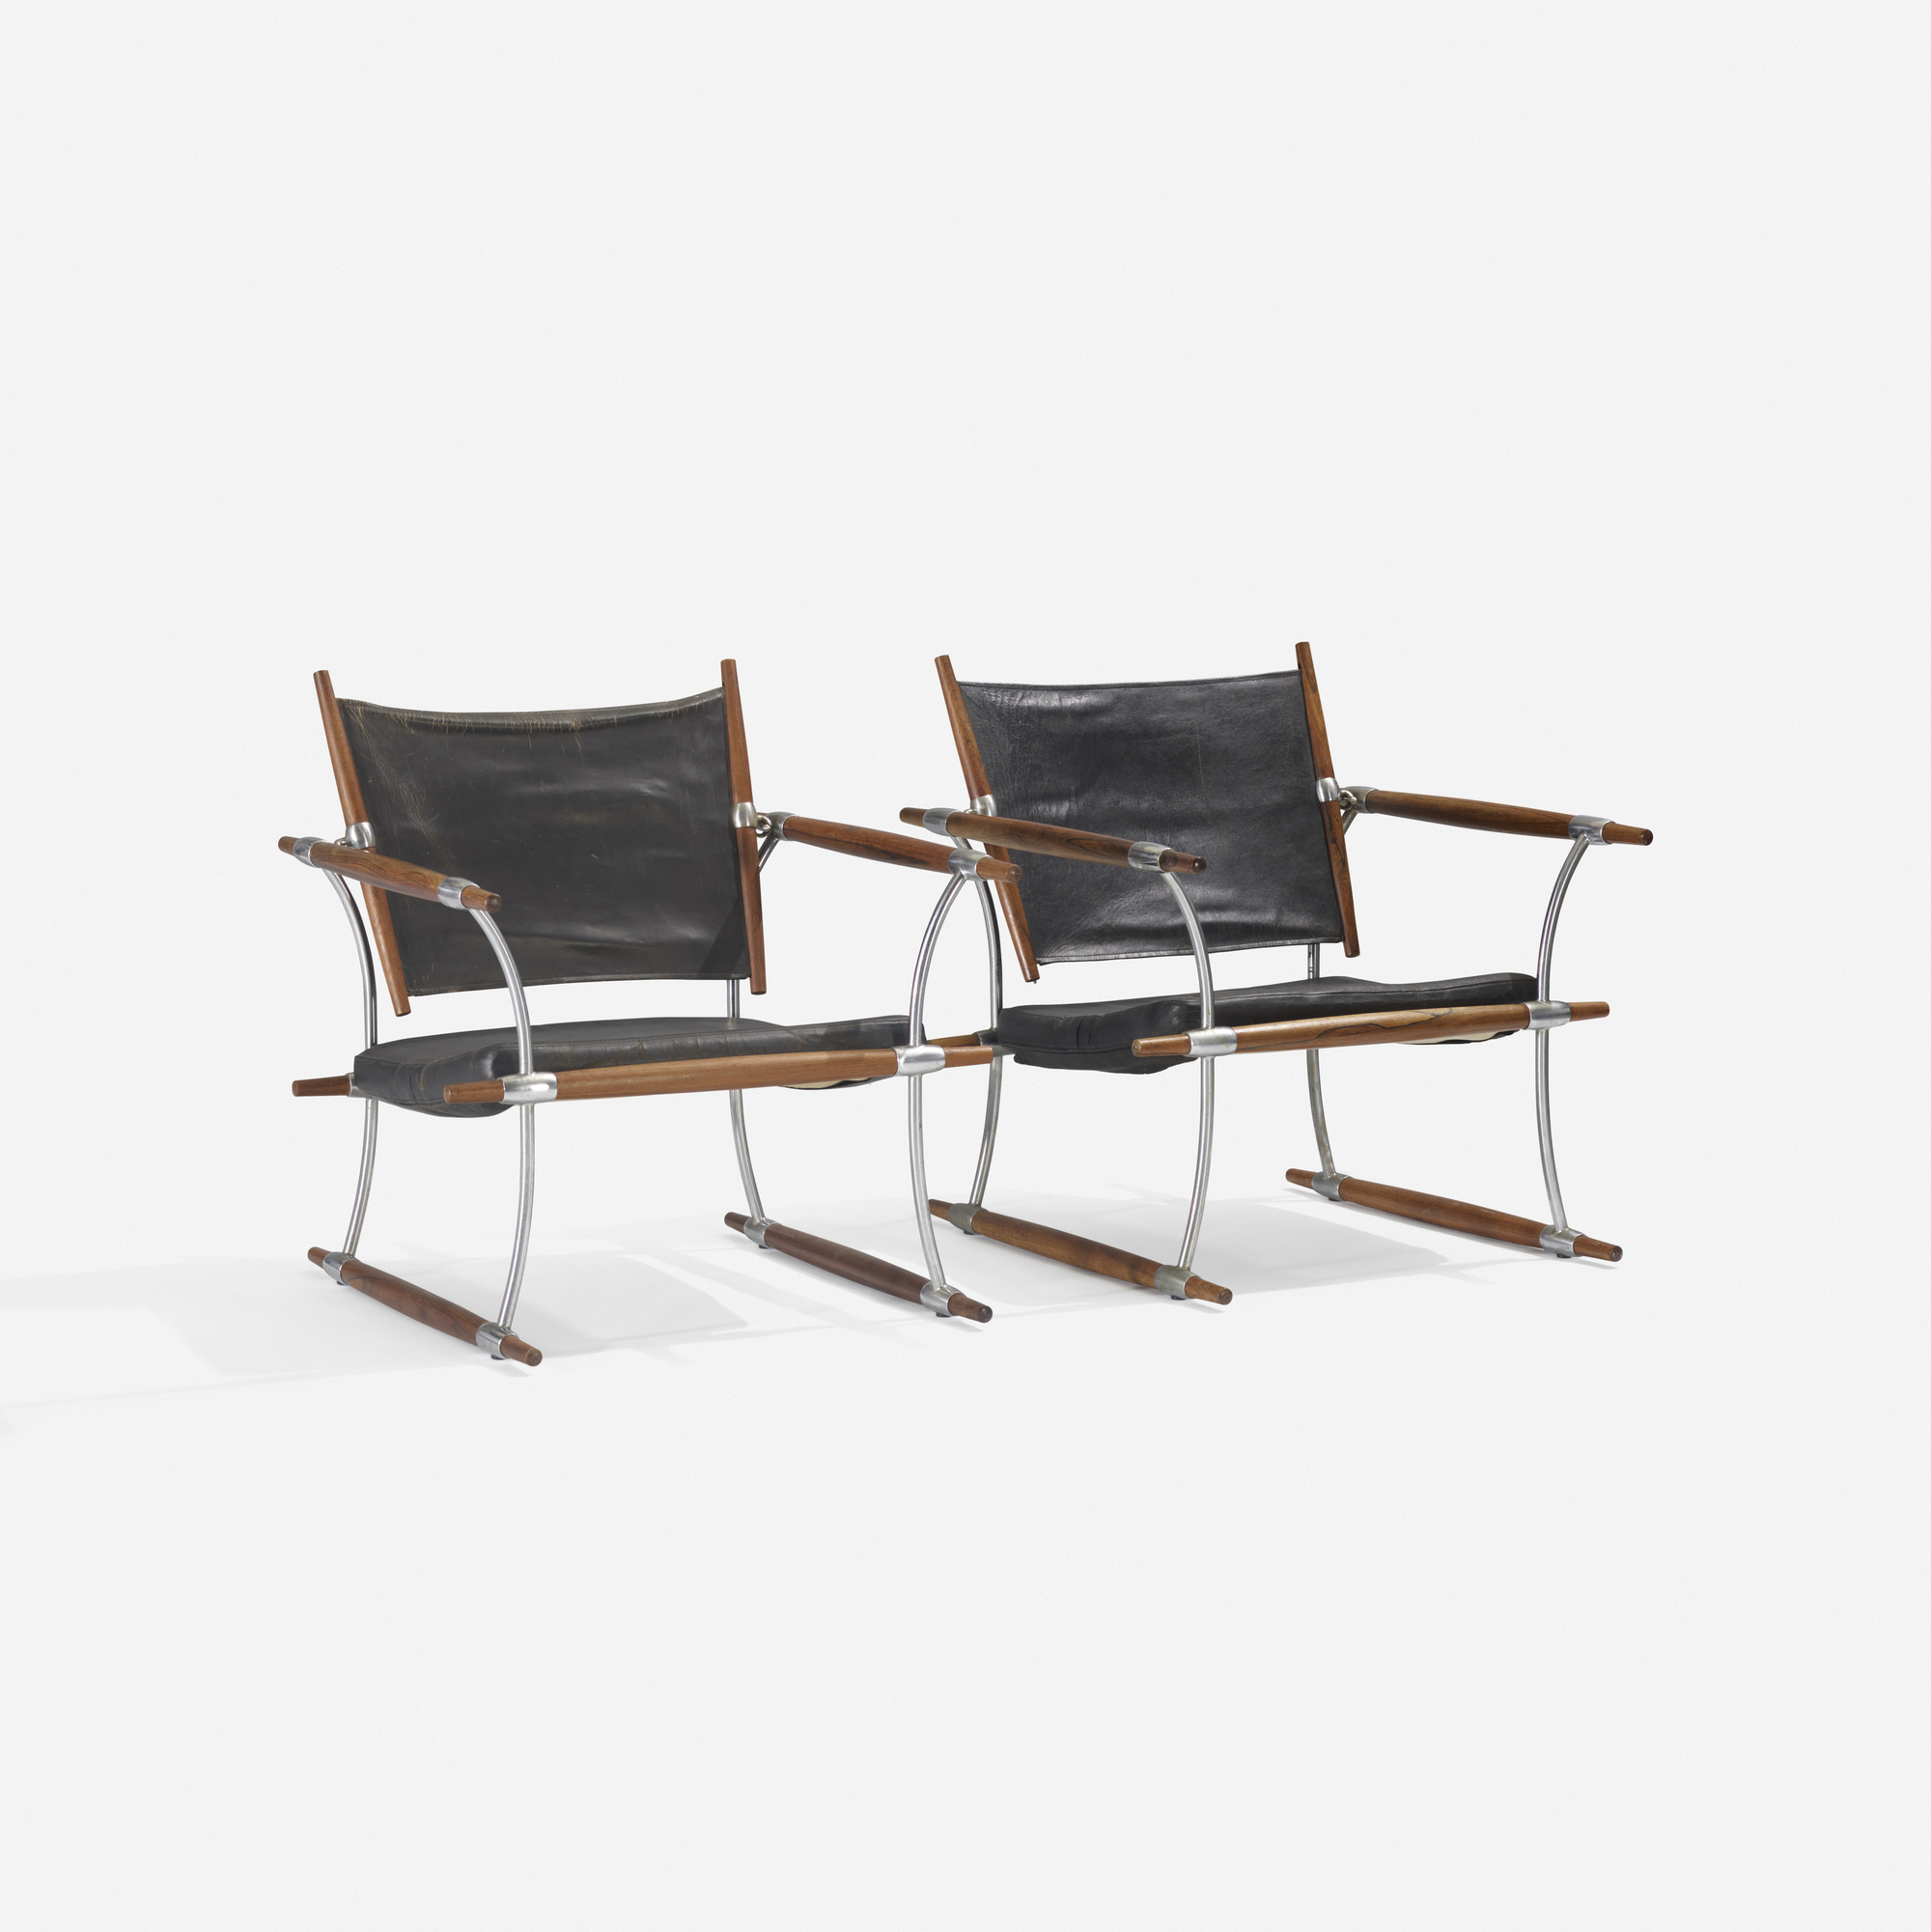 216: Jens Quistgaard / Stocke lounge chairs, pair (1 of 3)